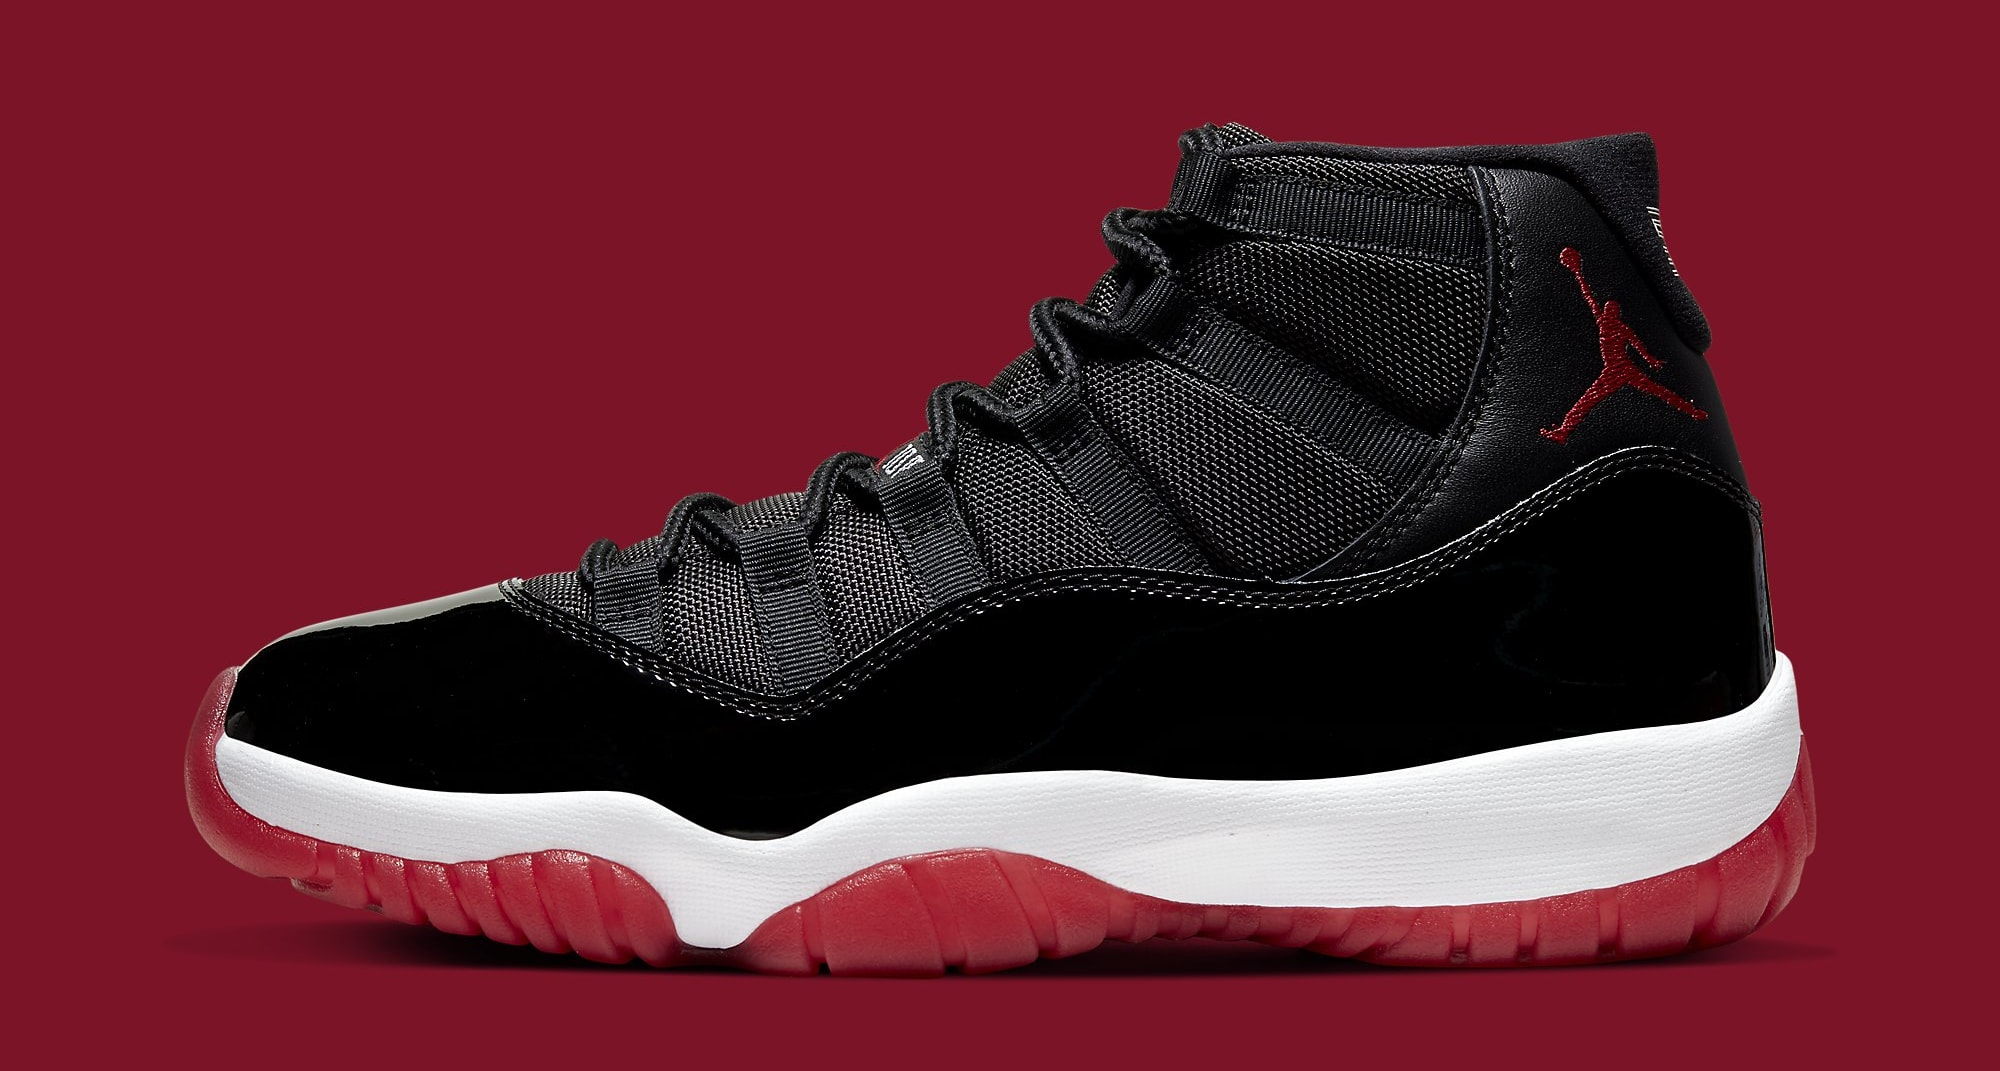 air-jordan-11-xi-retro-bred-2019-378037-061-lateral